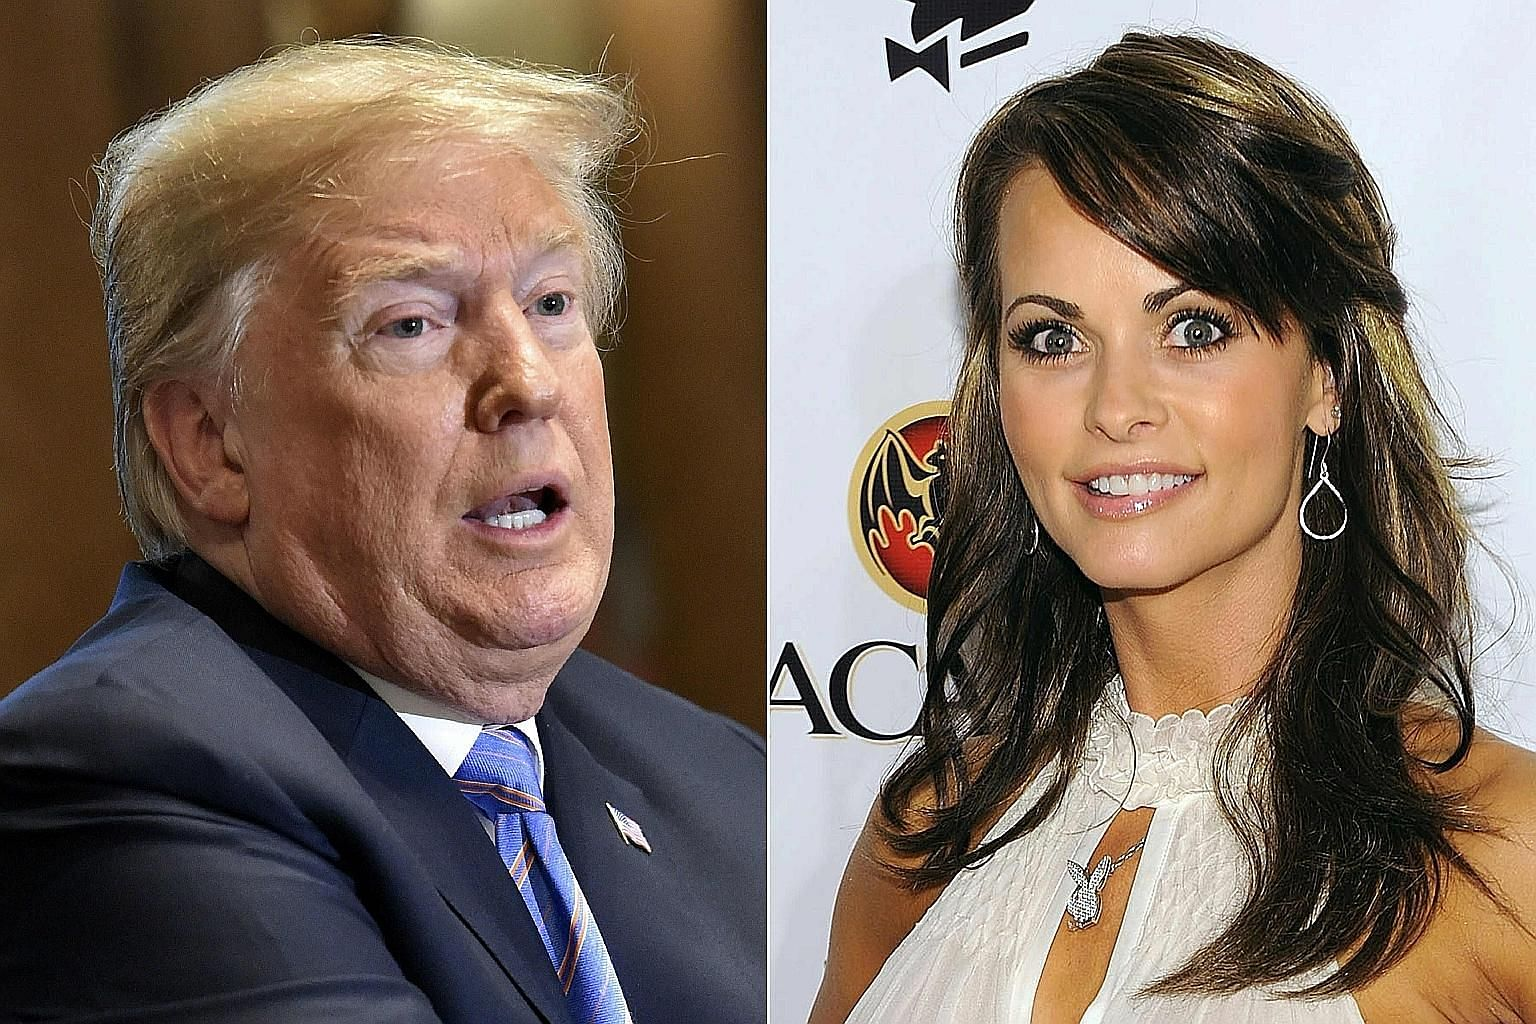 Former Playboy model Karen McDougal says she began a nearly year-long affair with Mr Donald Trump in 2006.